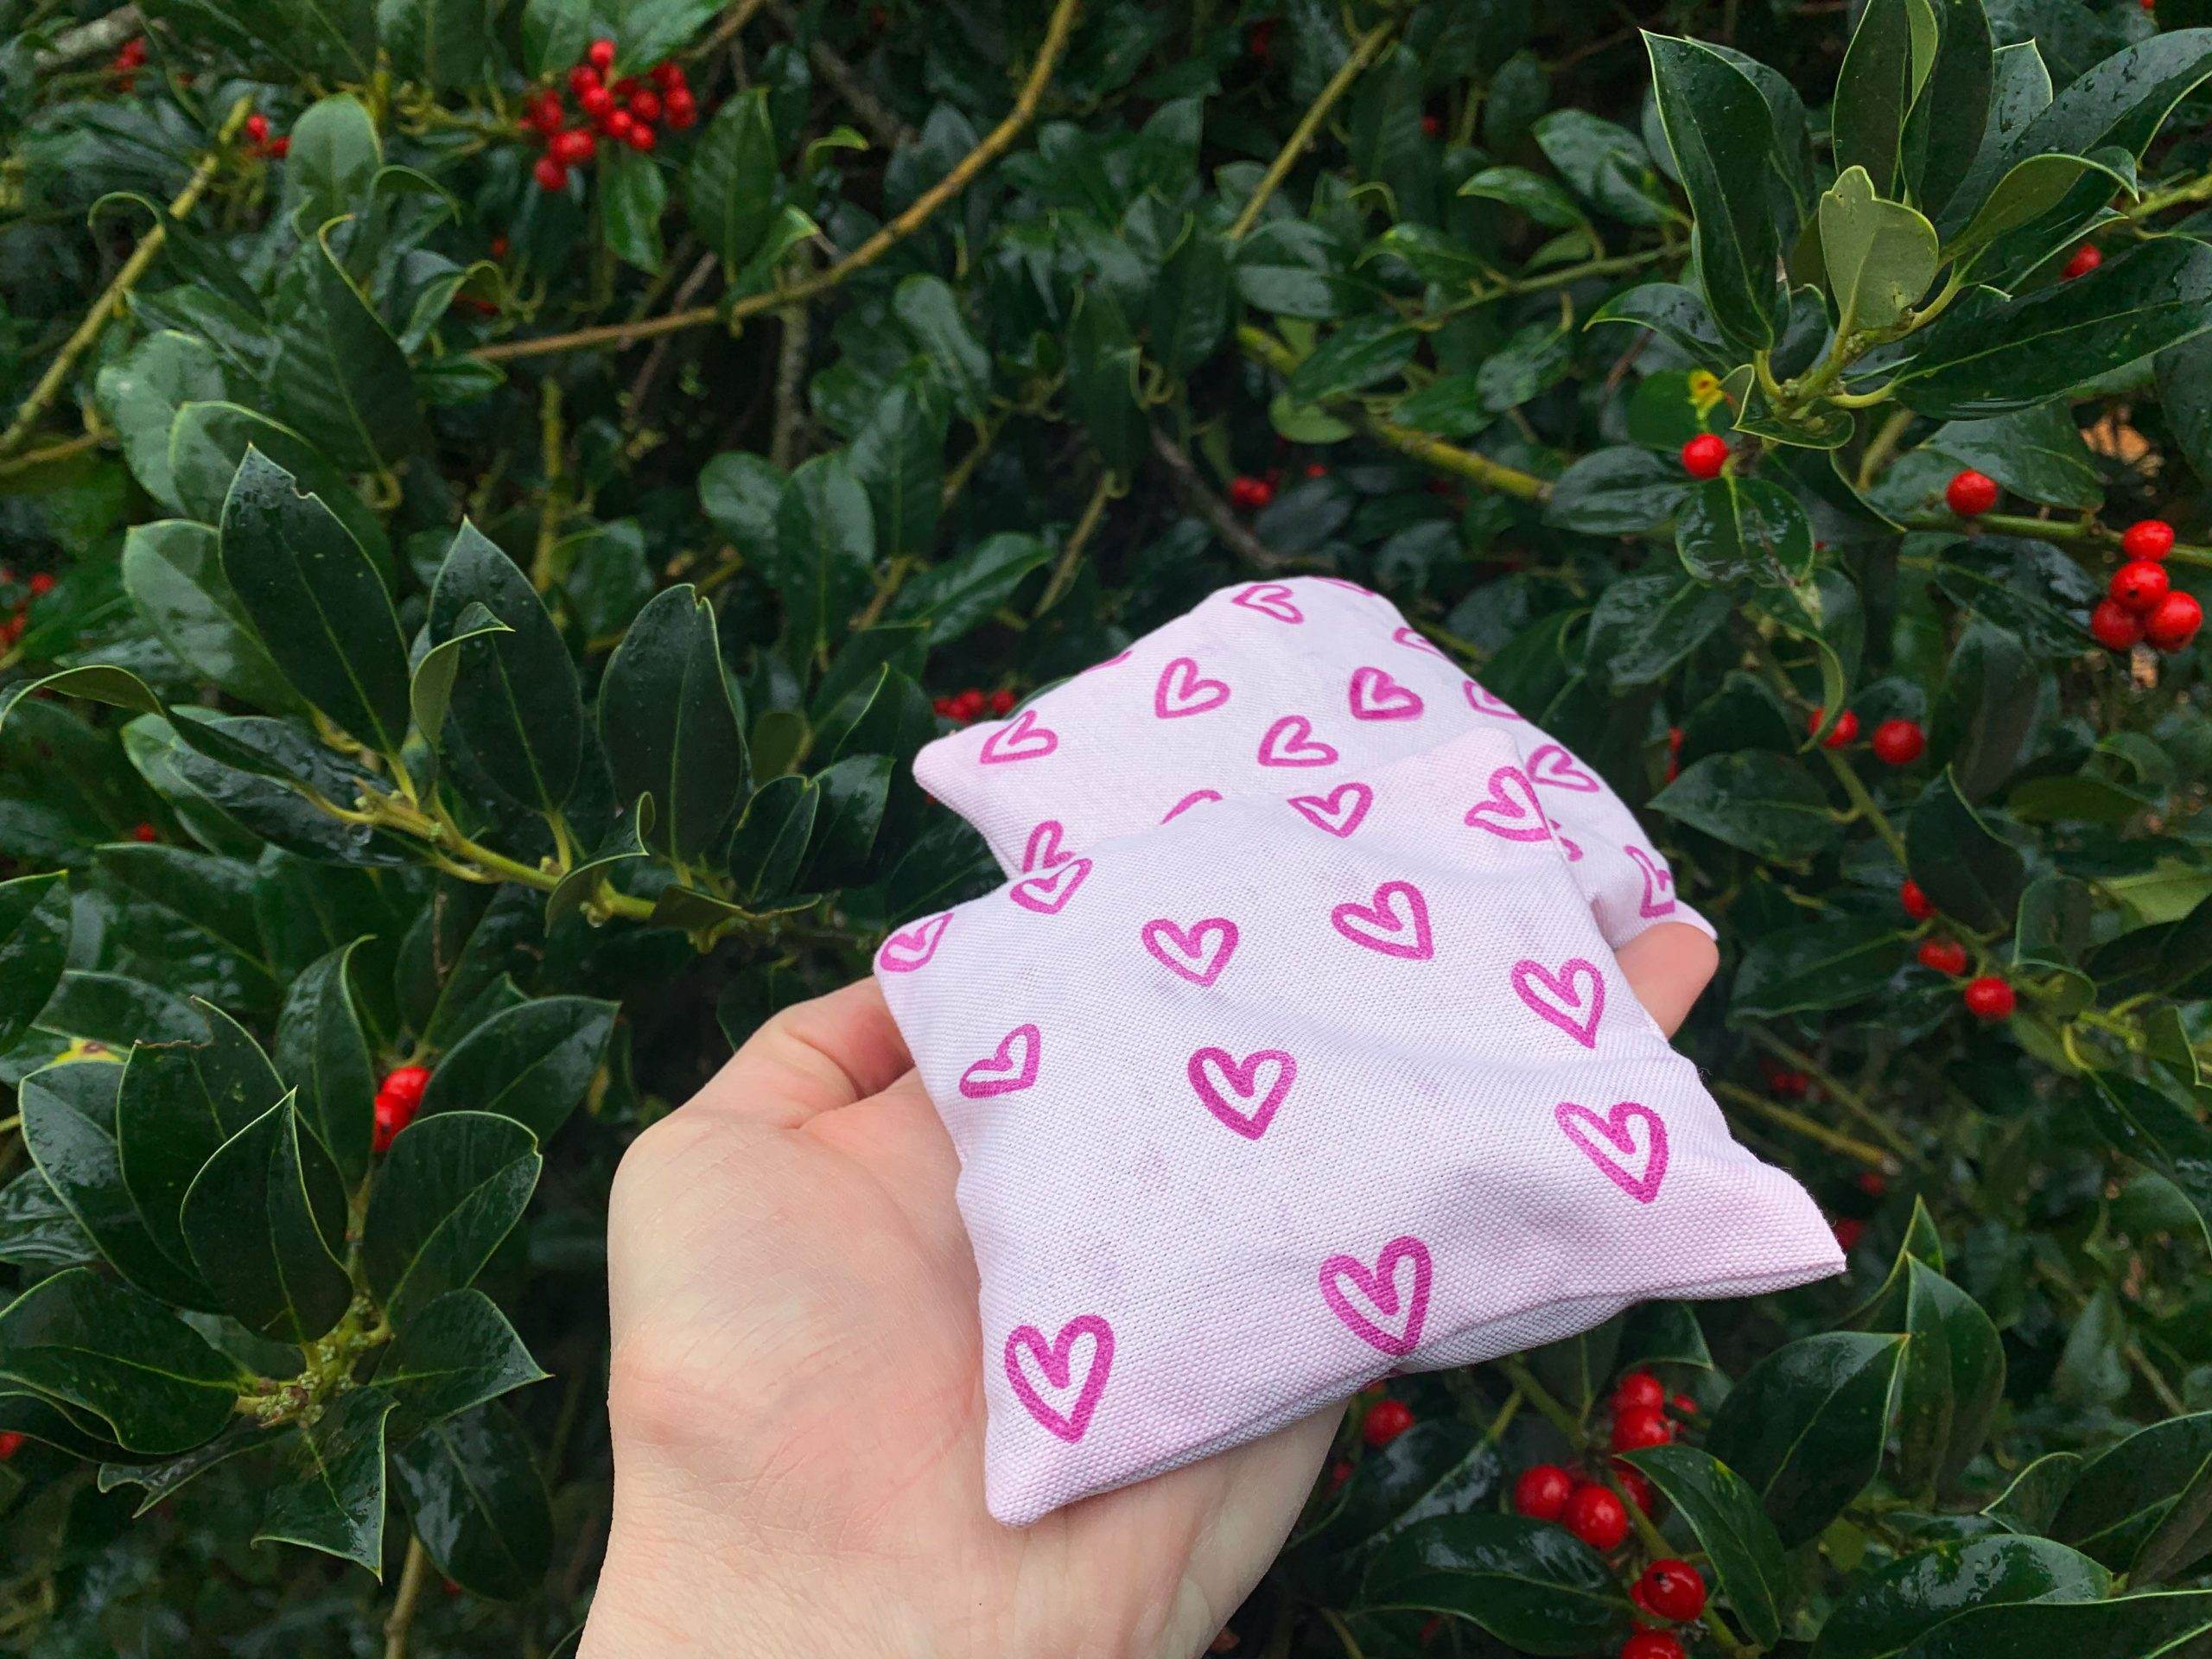 Sewing hand warmers - these hand warmers are quick to make and make a great gift!